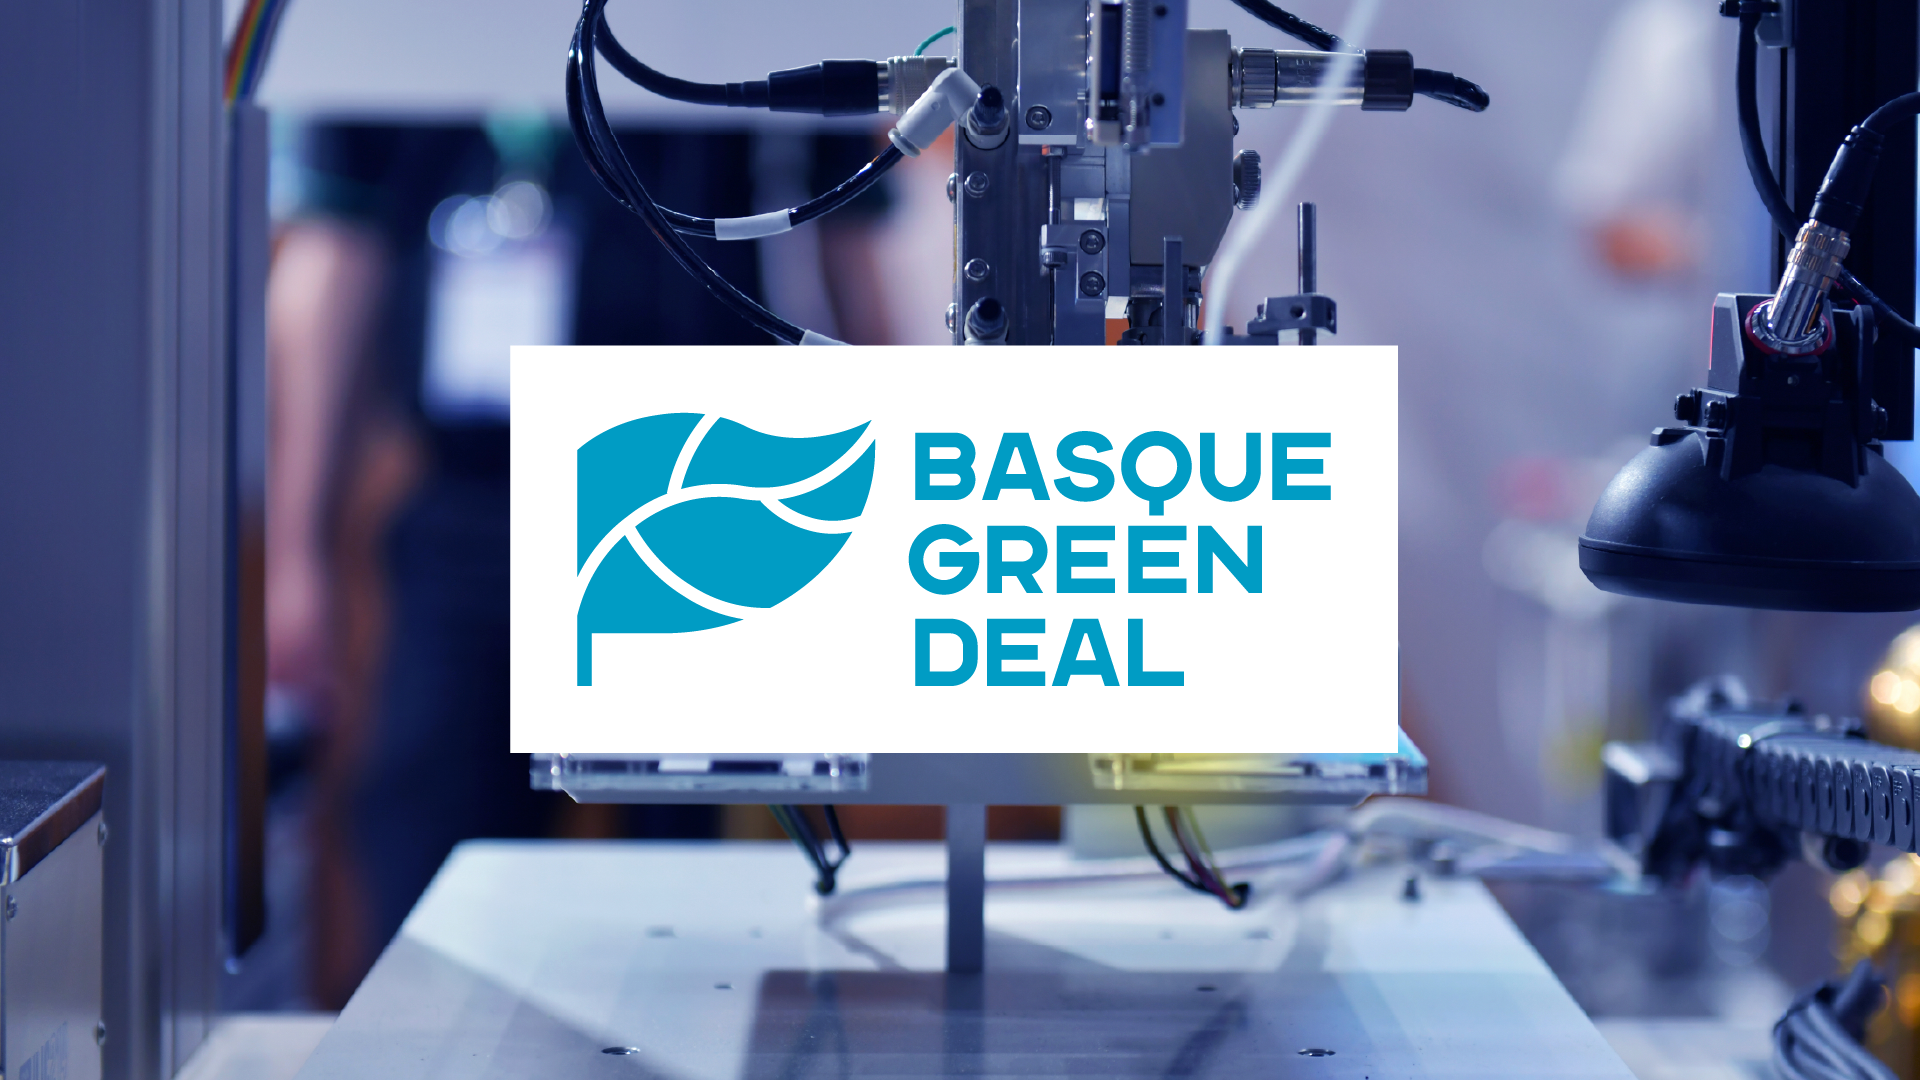 Basque_Green_Deal_9R.png